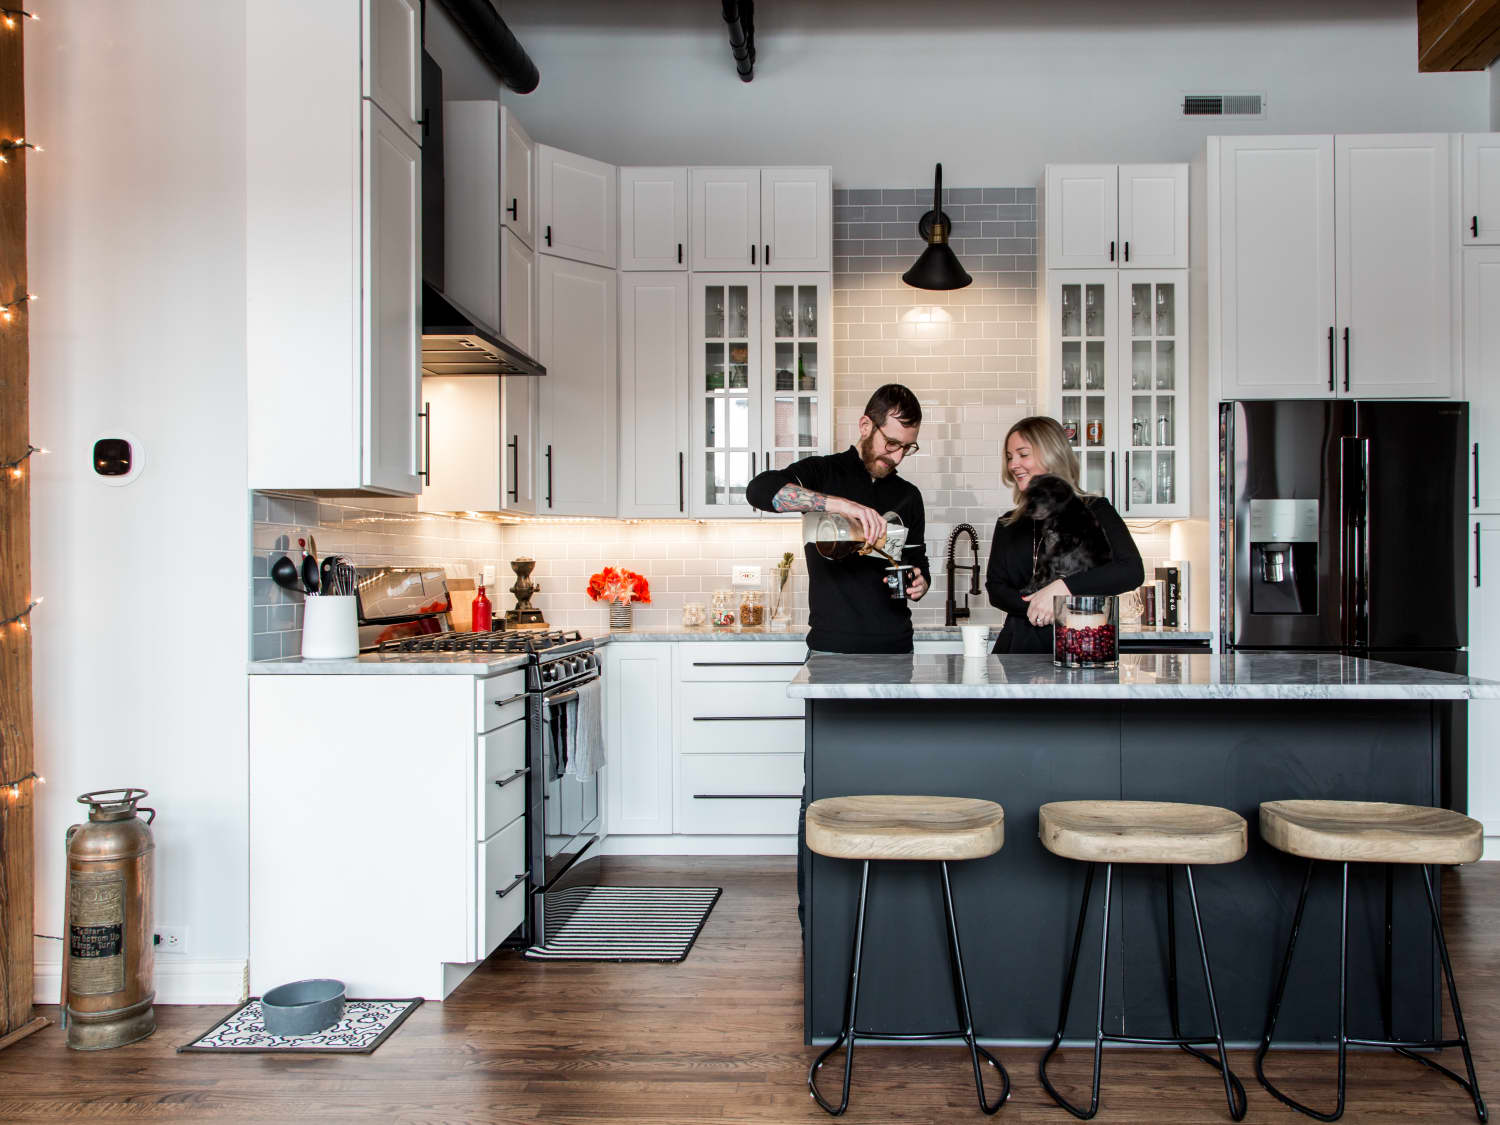 The Best Kitchen Cabinet Trends For 2020 According To Experts Apartment Therapy